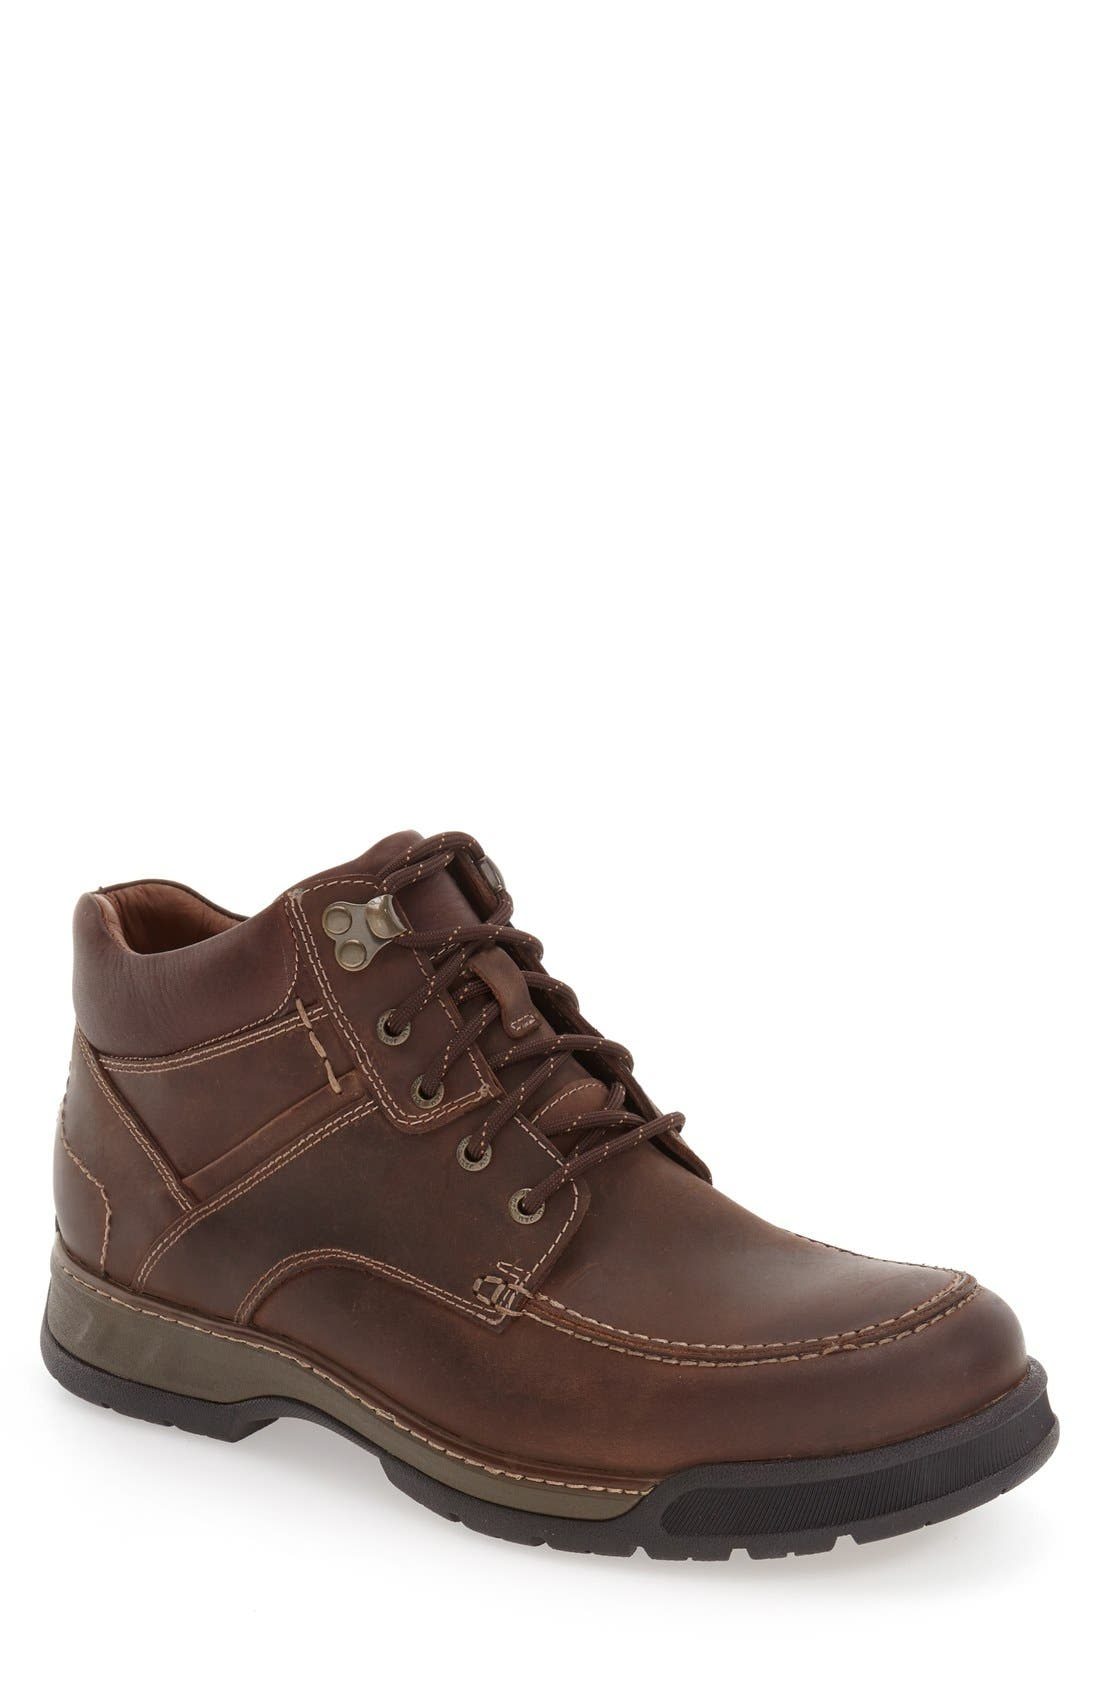 Waterproof Moc Toe Boot,                         Main,                         color, Tan